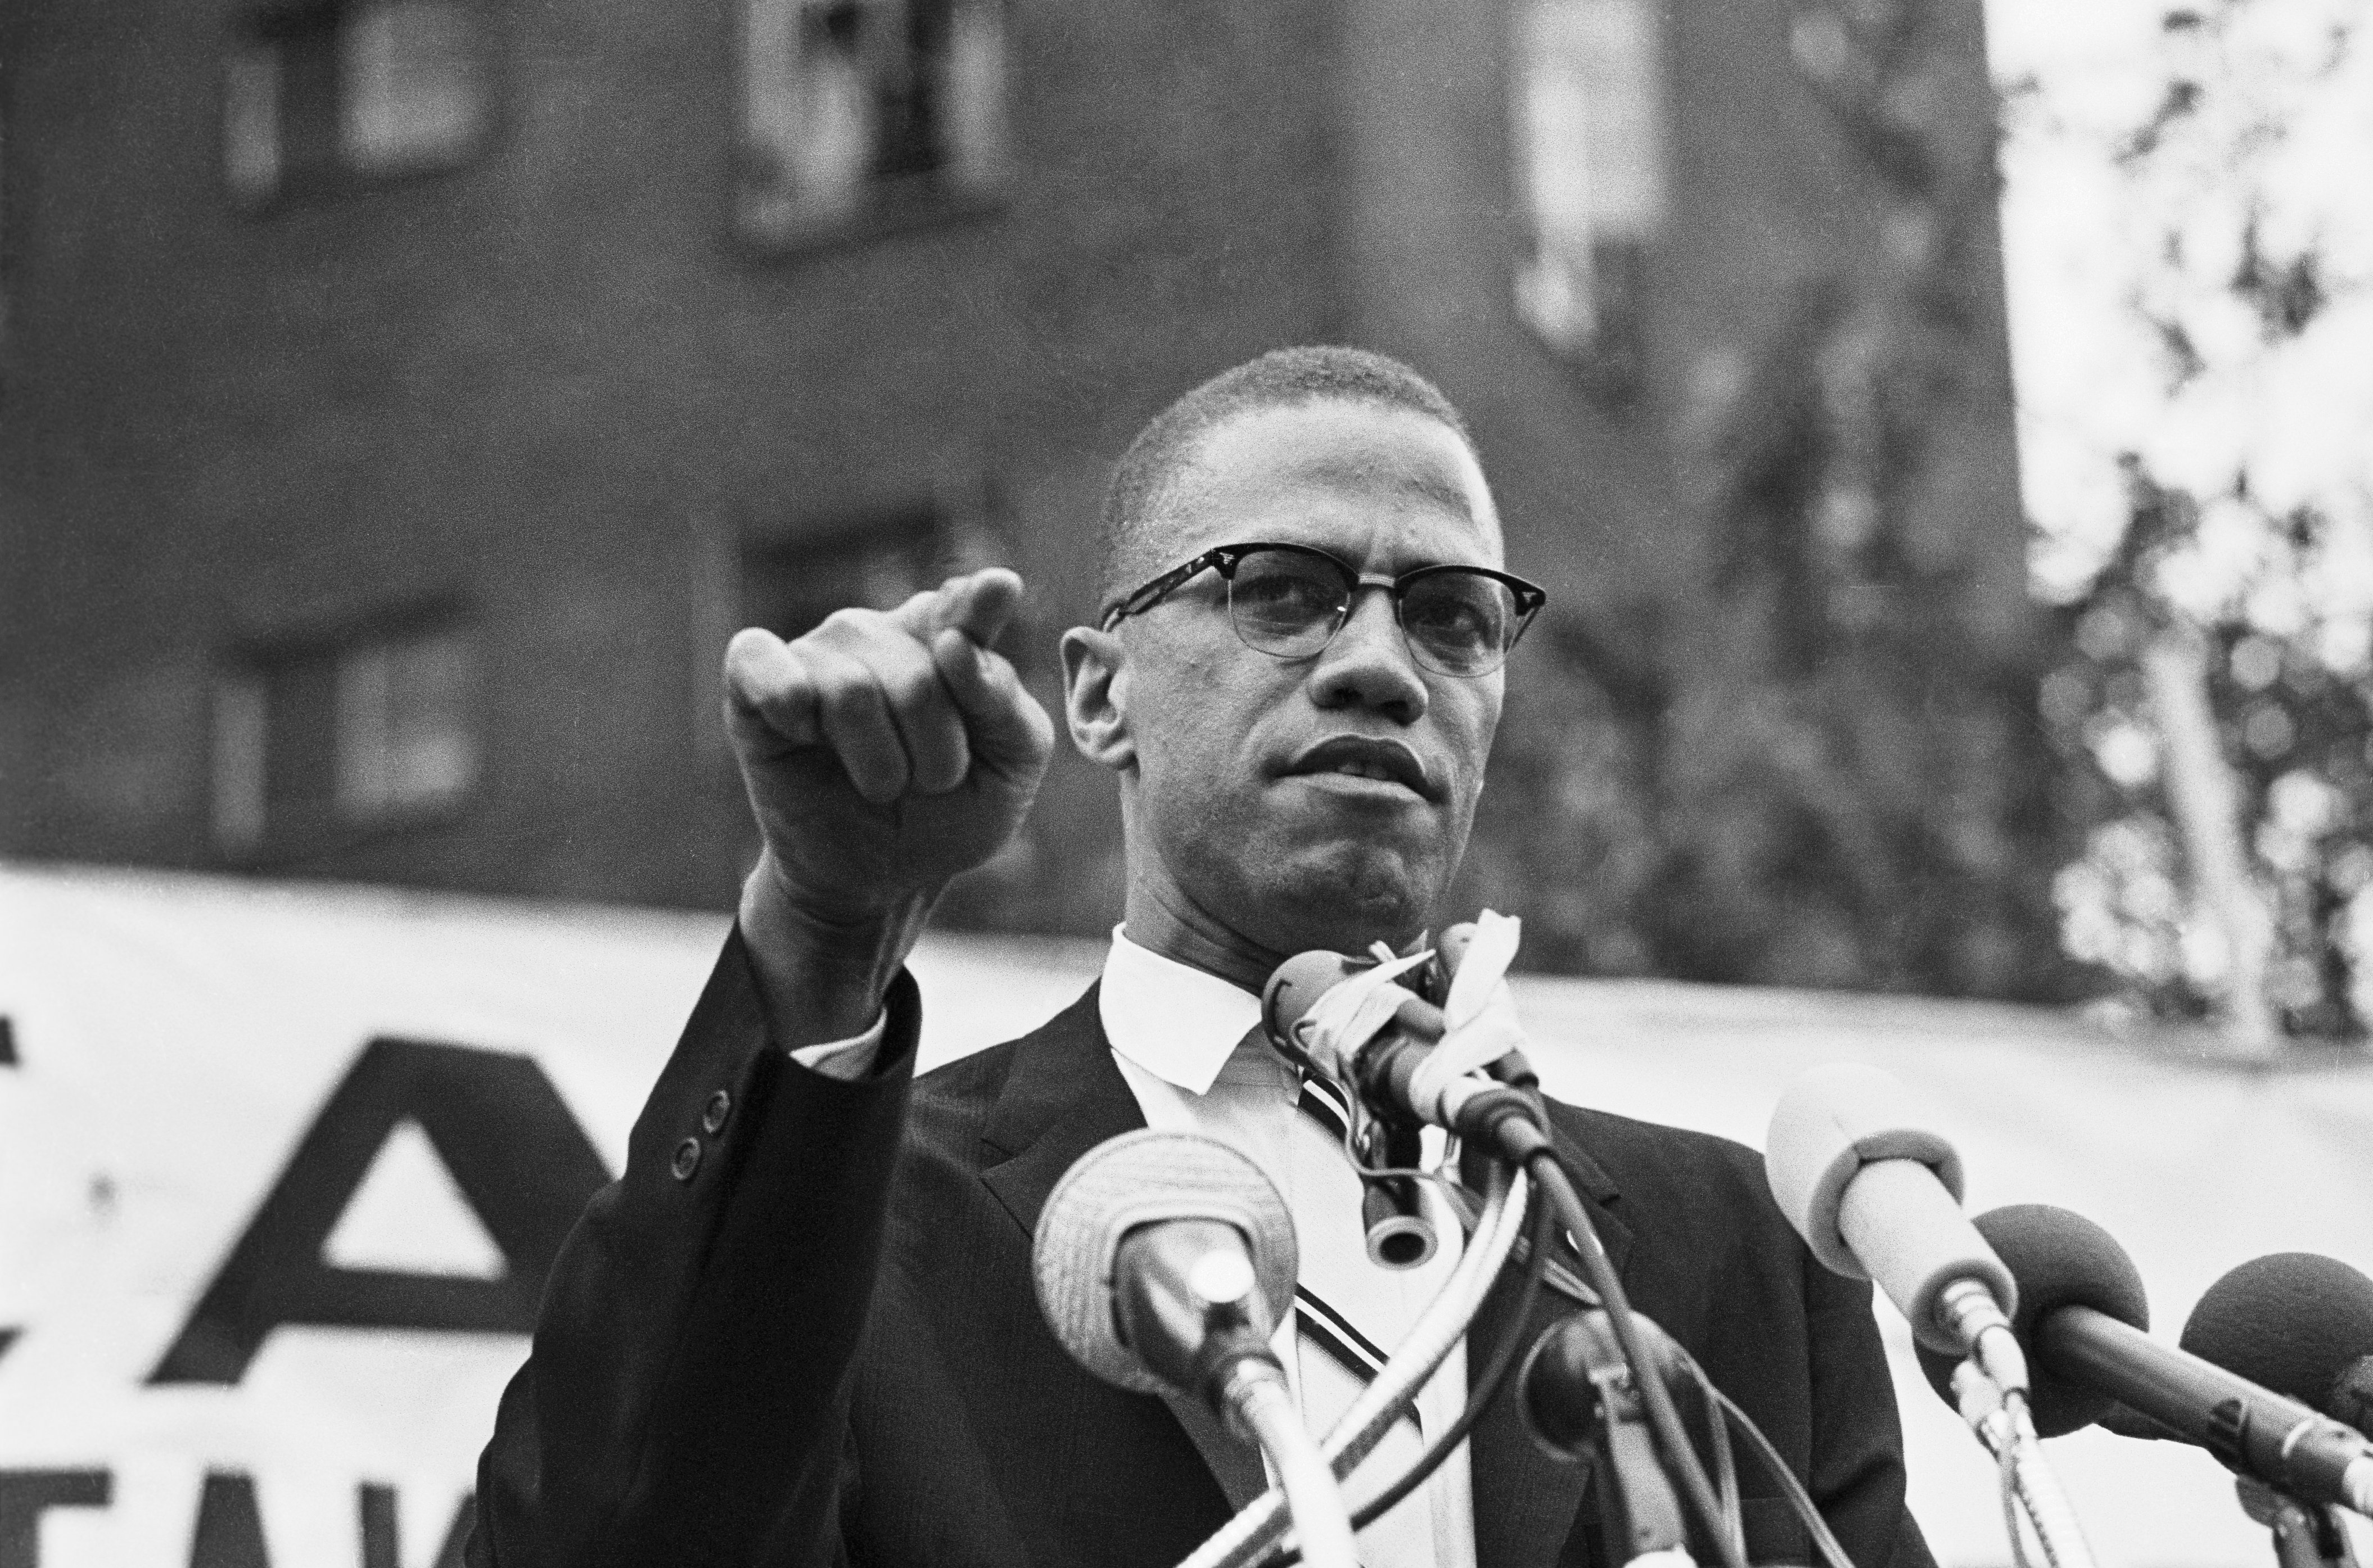 Nation of Islam leader Malcolm X speaking at a rally | Source: Getty Images